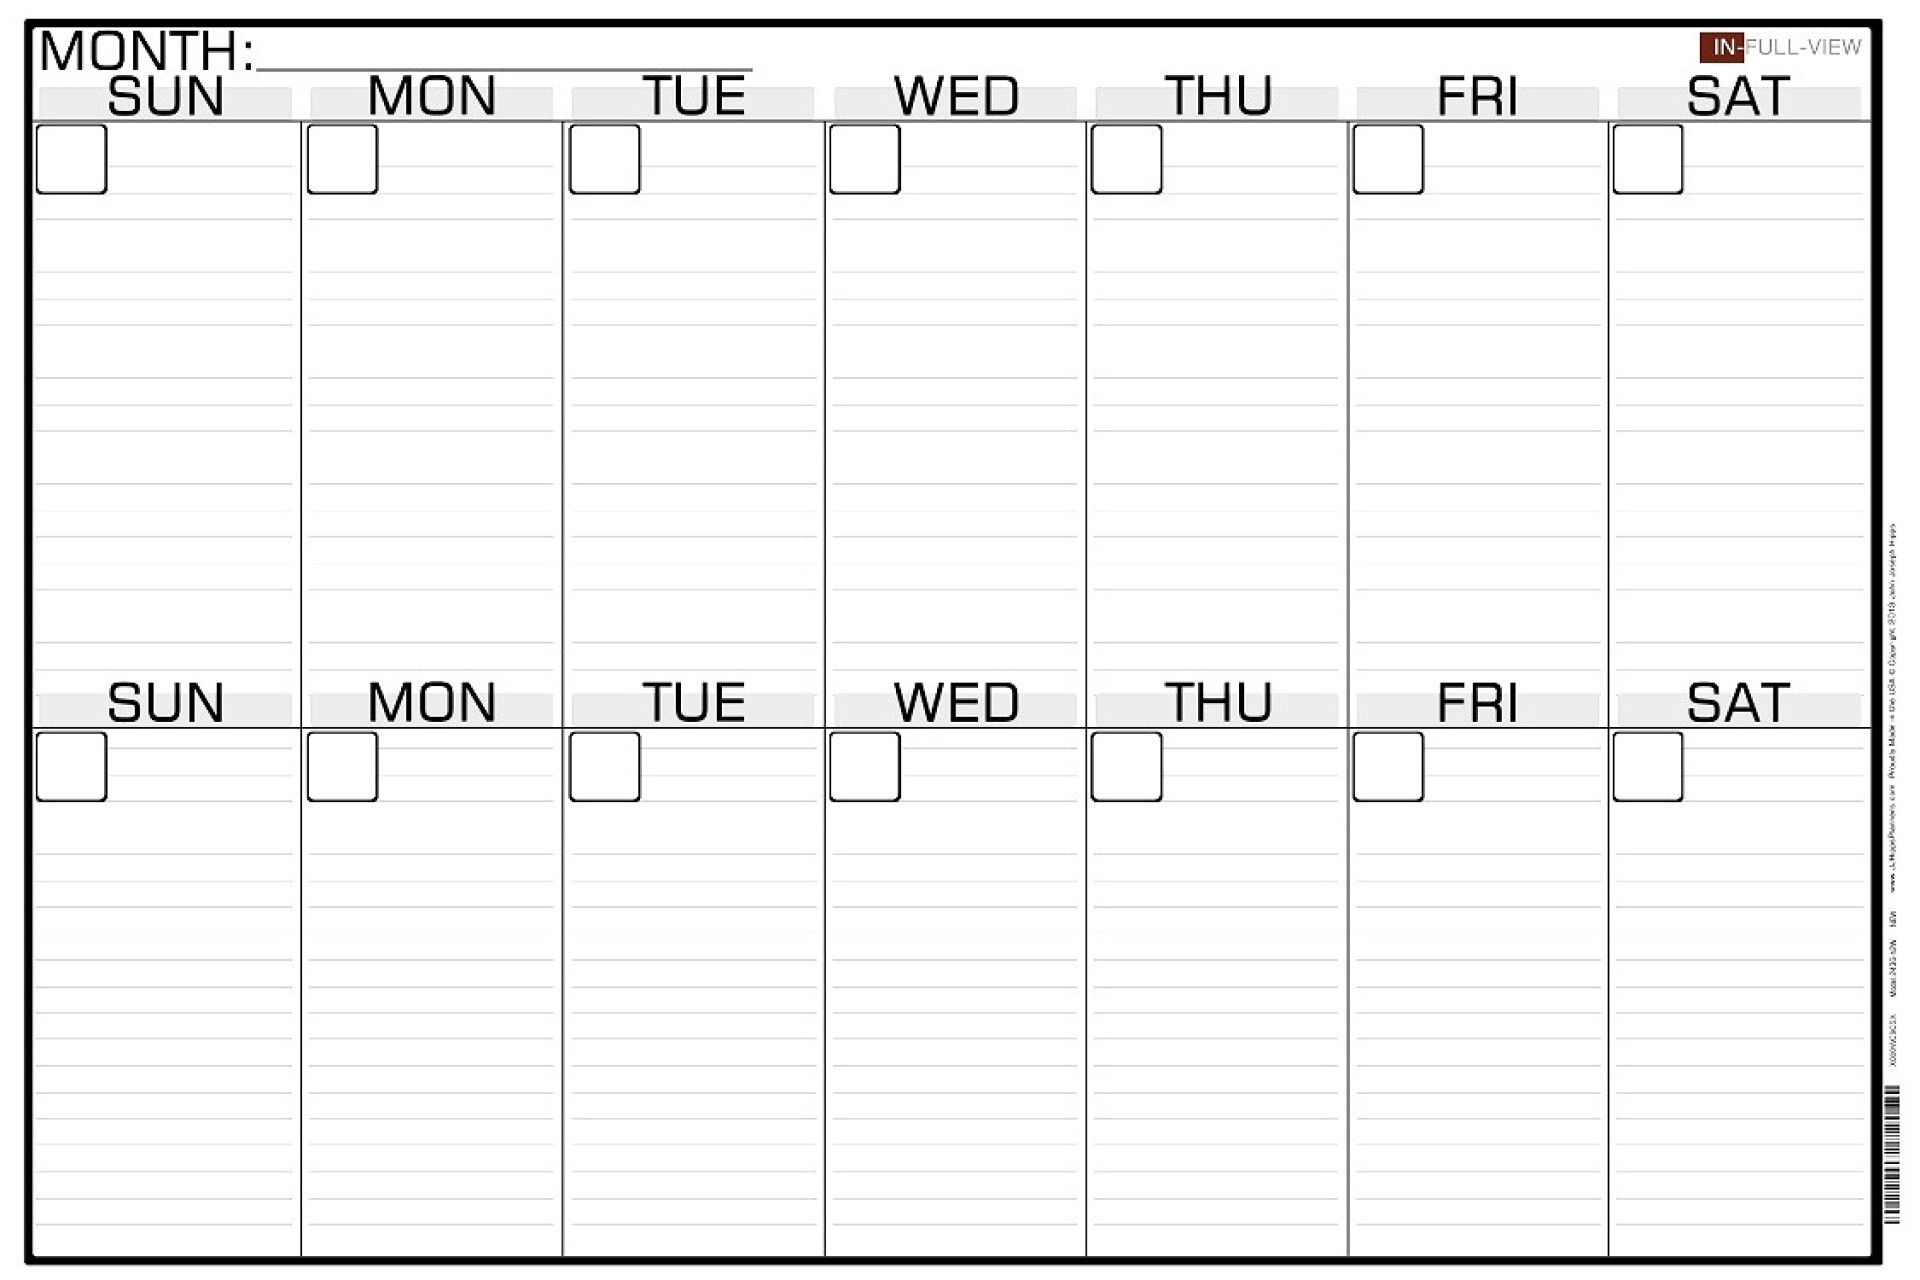 018 Two Week Calendar Template April Sunday Stupendous Ideas Excel regarding Blank 2 Week Printable Calendar